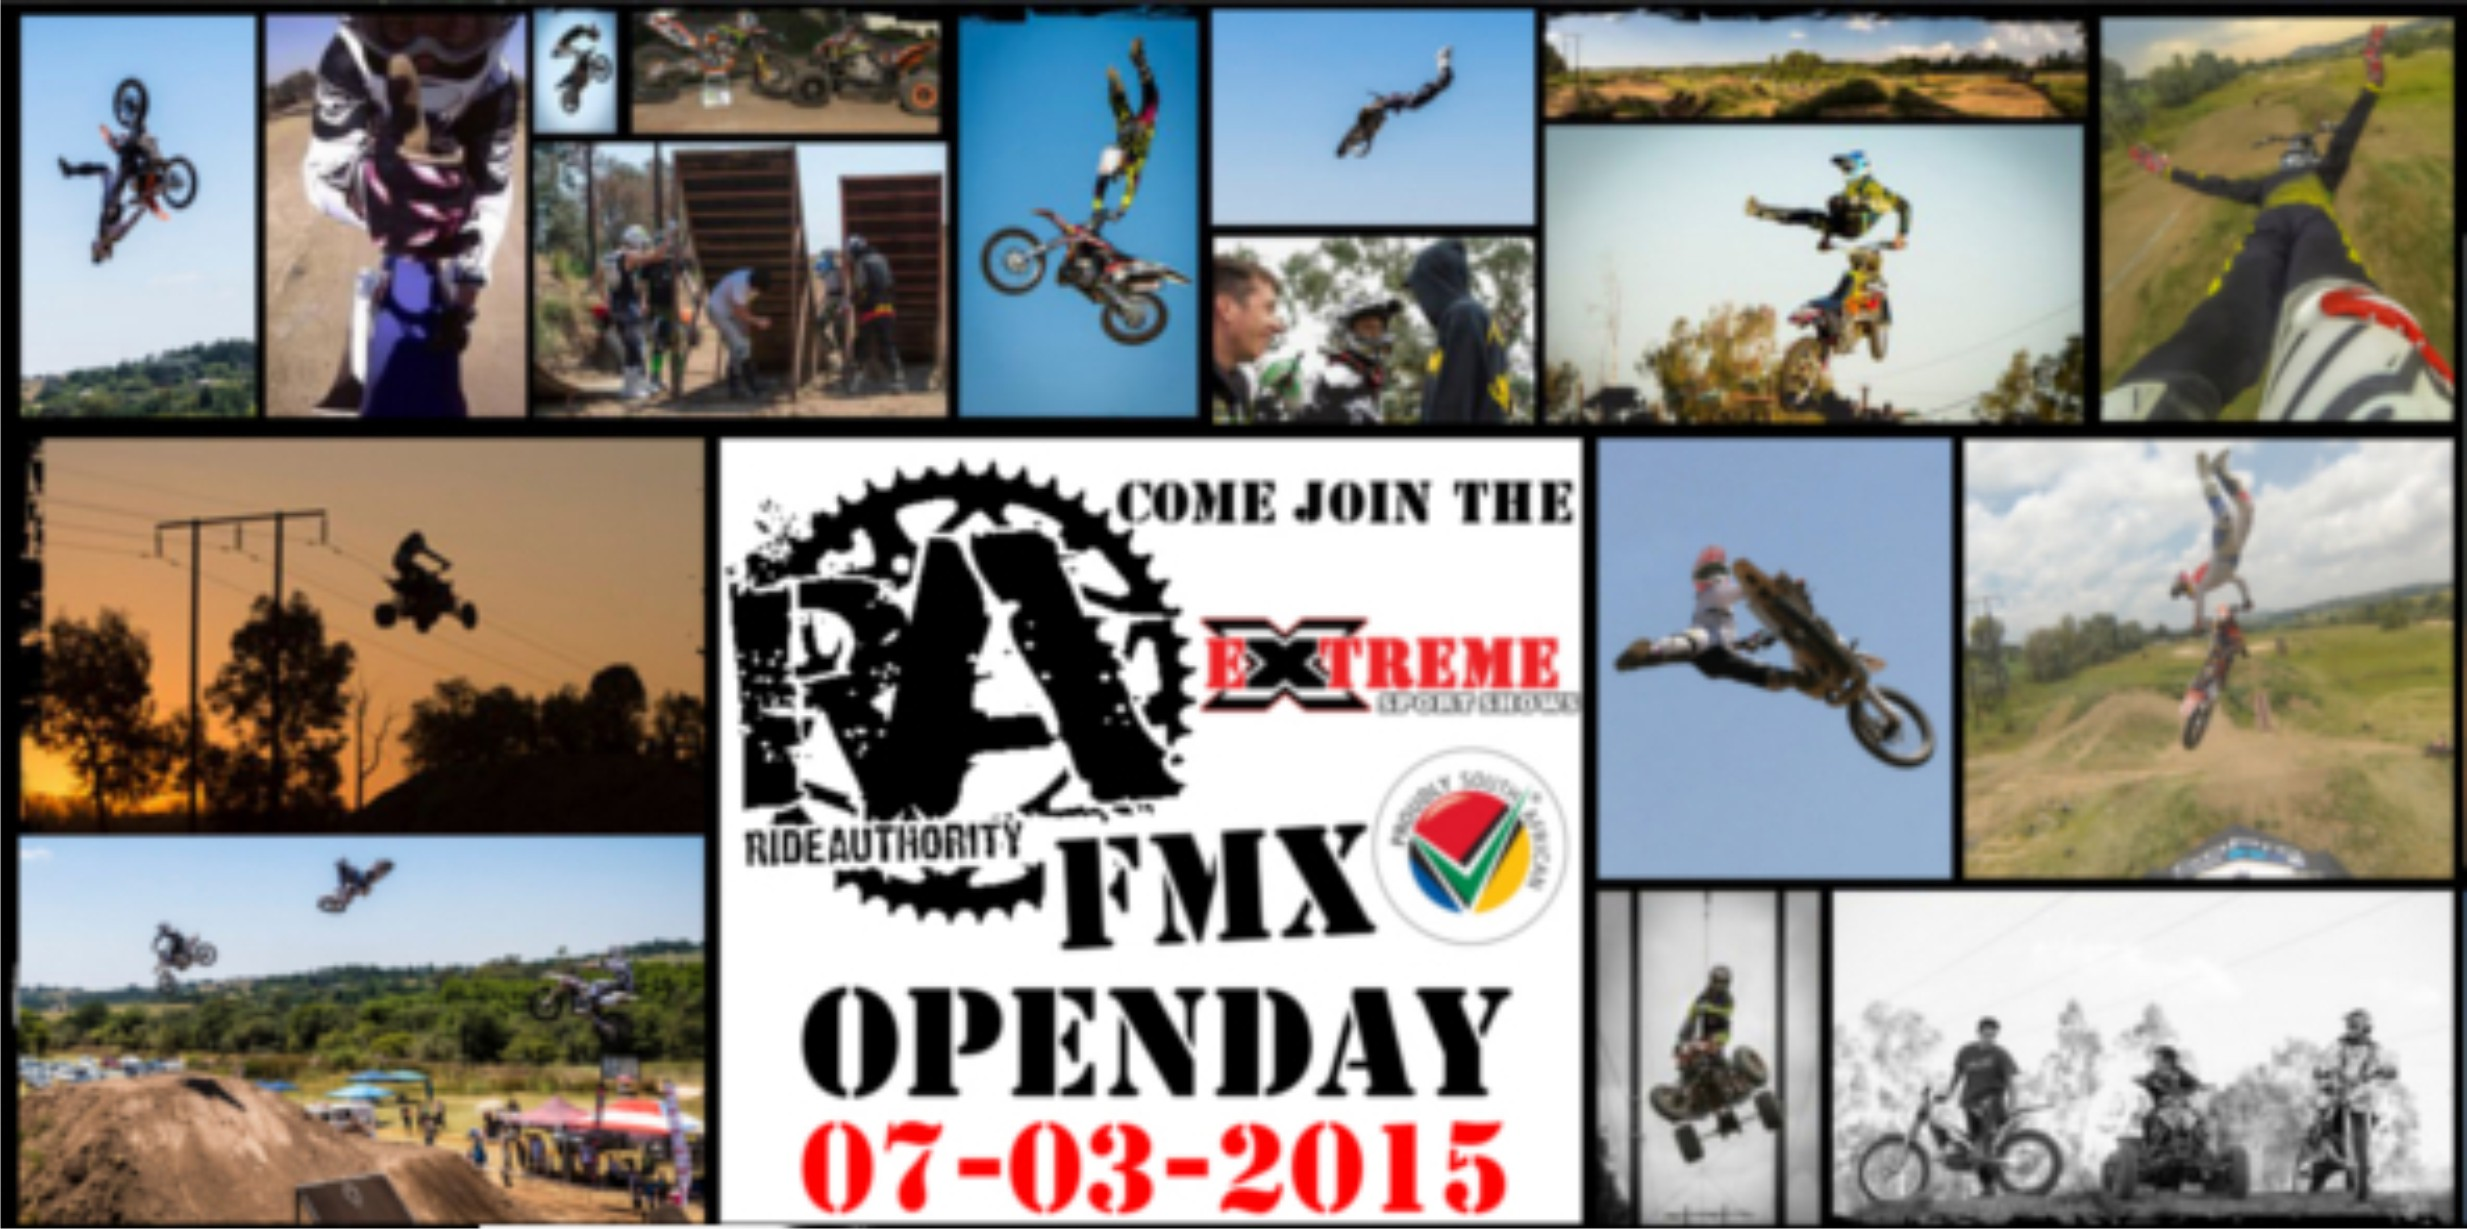 Joing the Ride Authority FMX Open Day on 7 March 2015